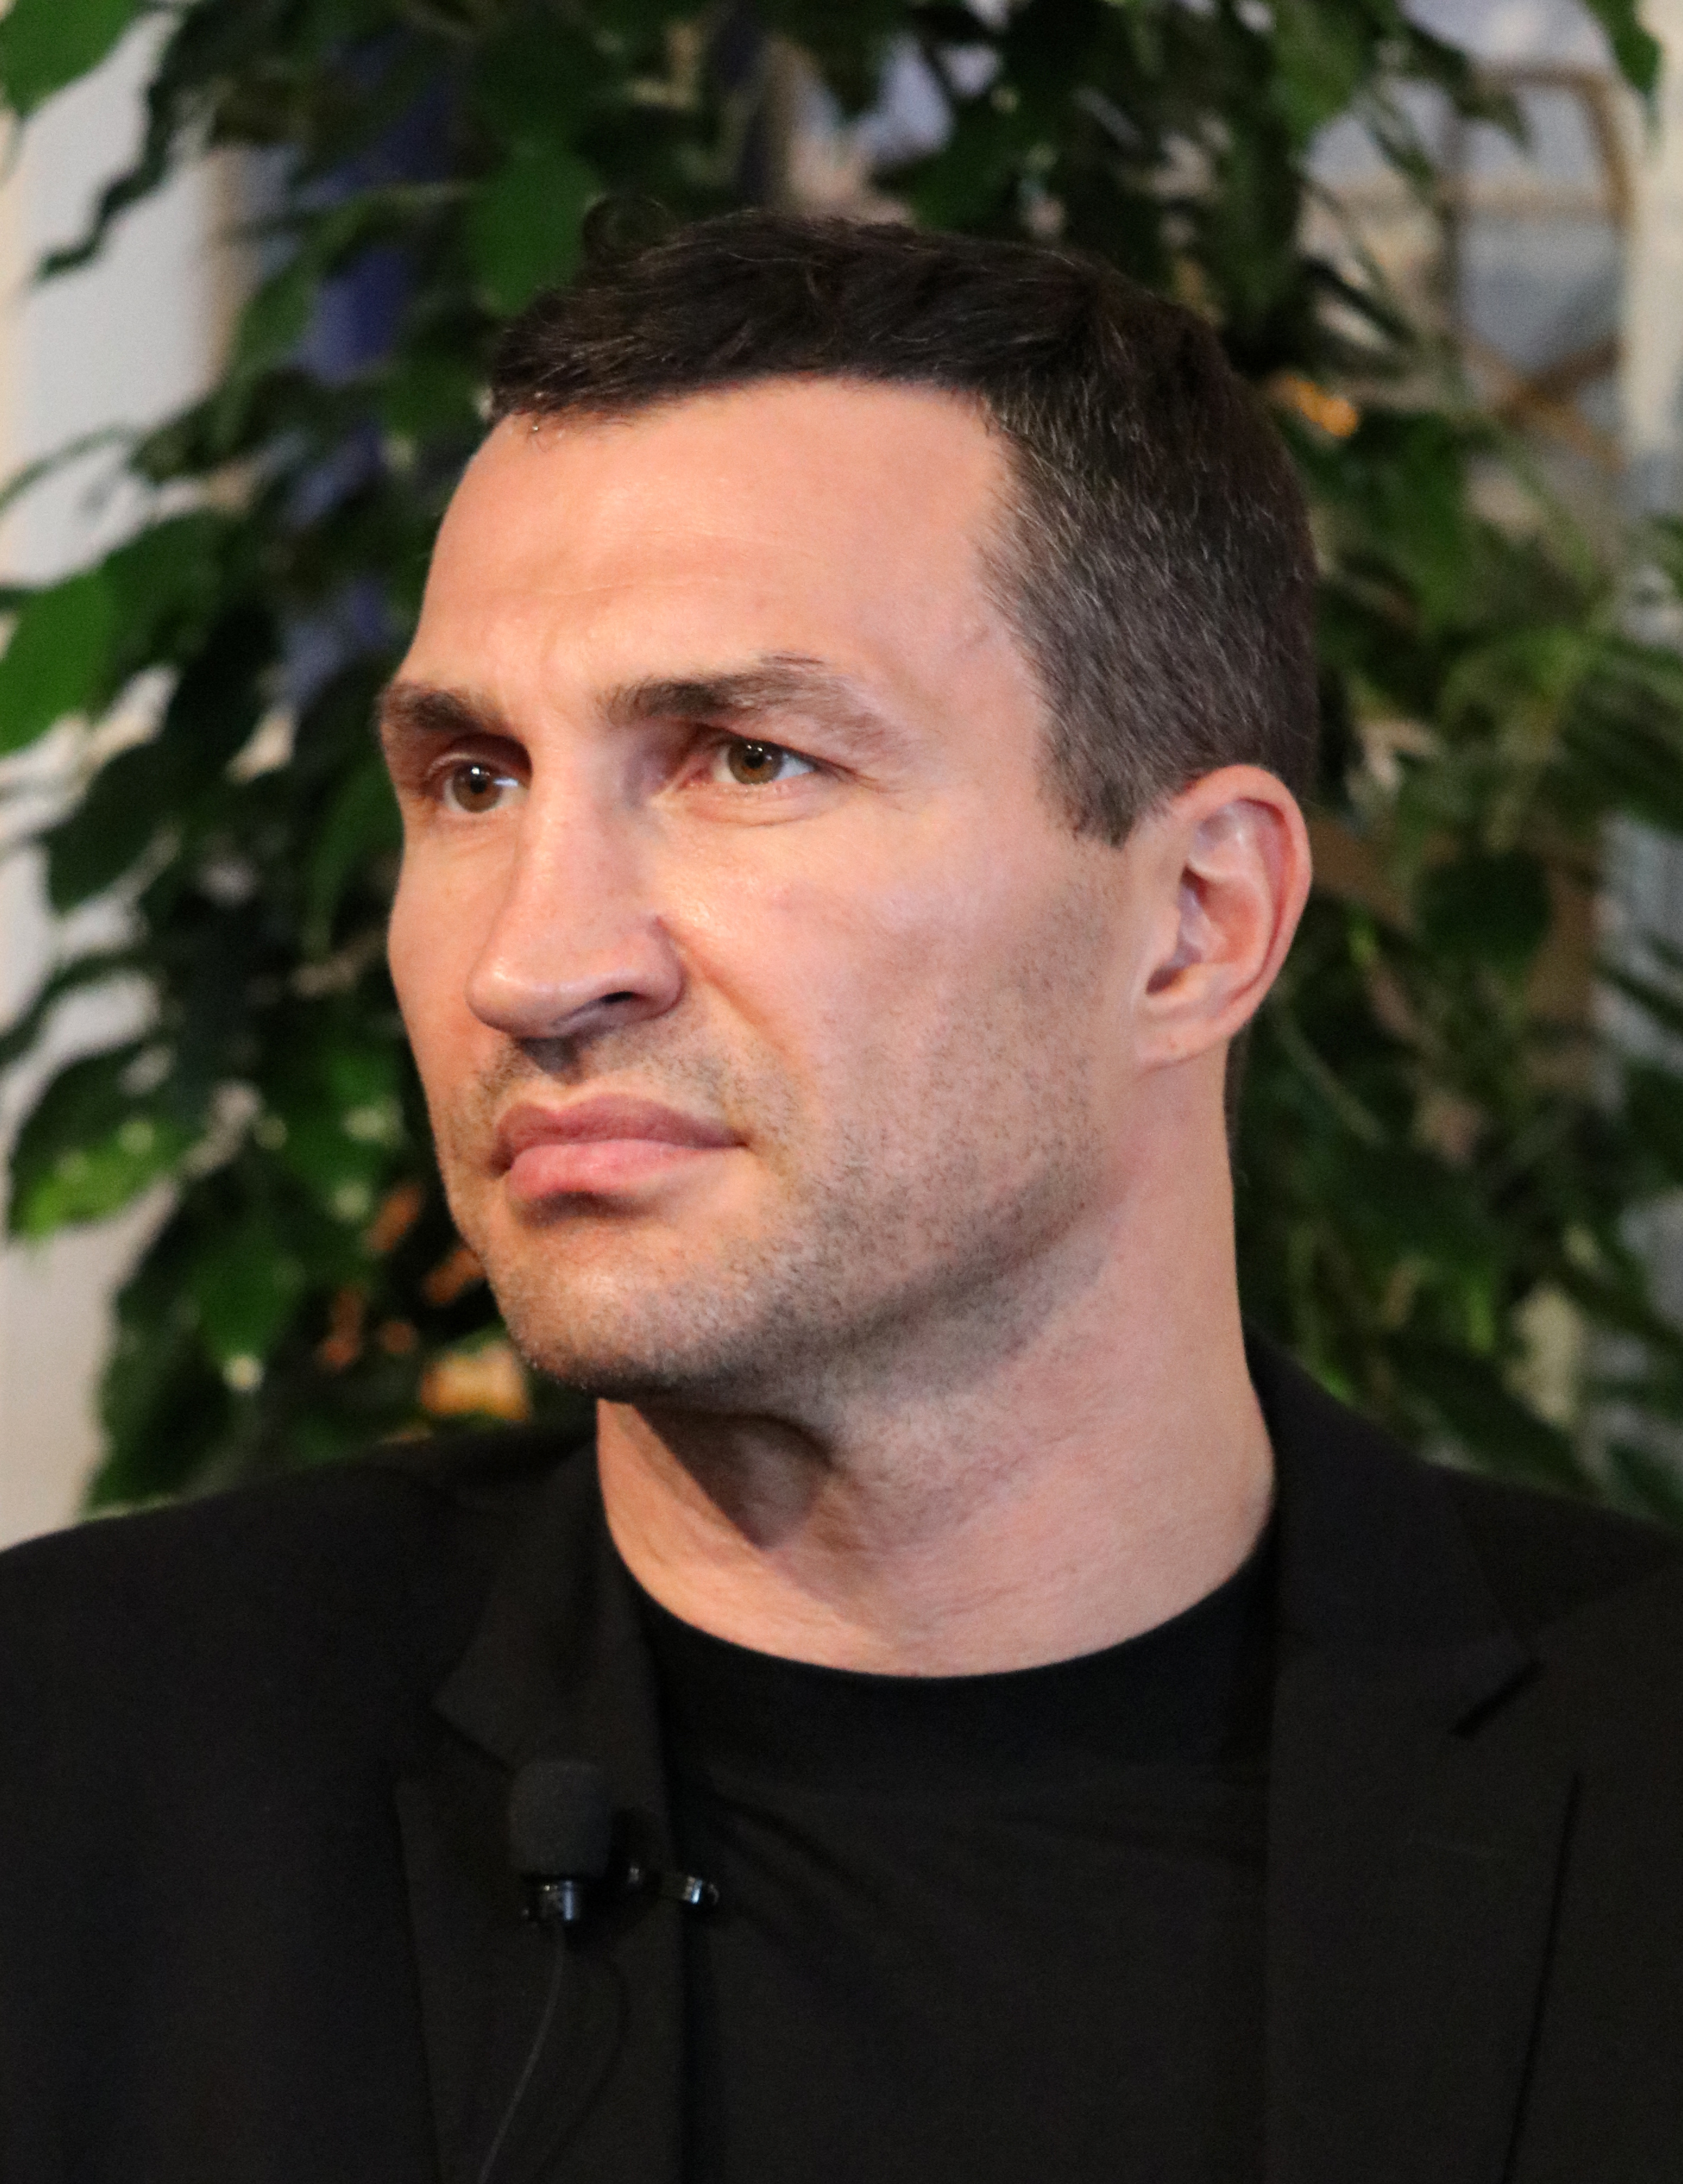 The 42-year old son of father Vladimir Rodionovich and mother Nadezhda Ulyanovna Wladimir Klitschko in 2018 photo. Wladimir Klitschko earned a  million dollar salary - leaving the net worth at 30 million in 2018